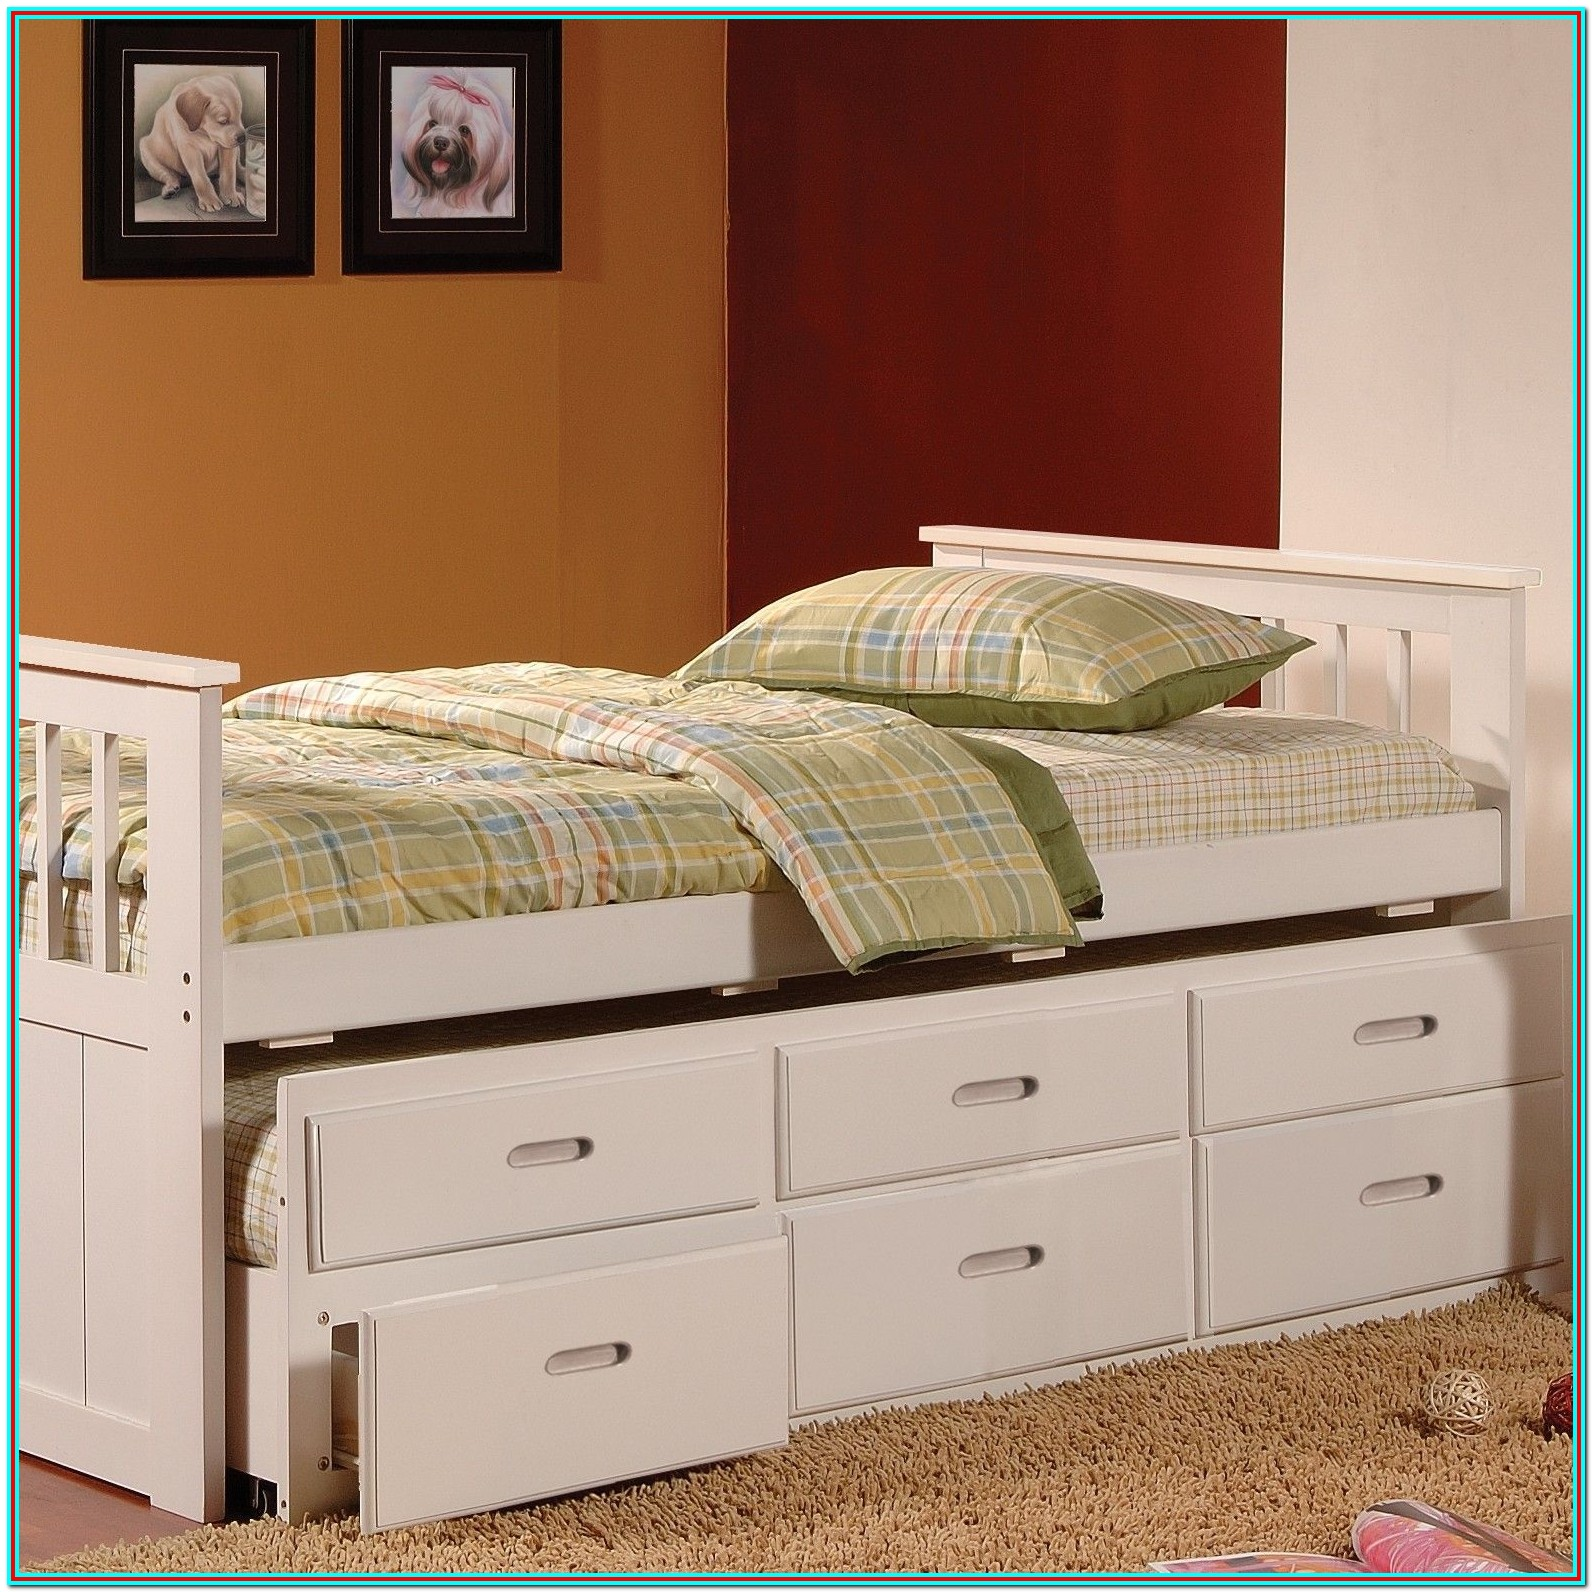 Twin Size Bed With Mattress Included